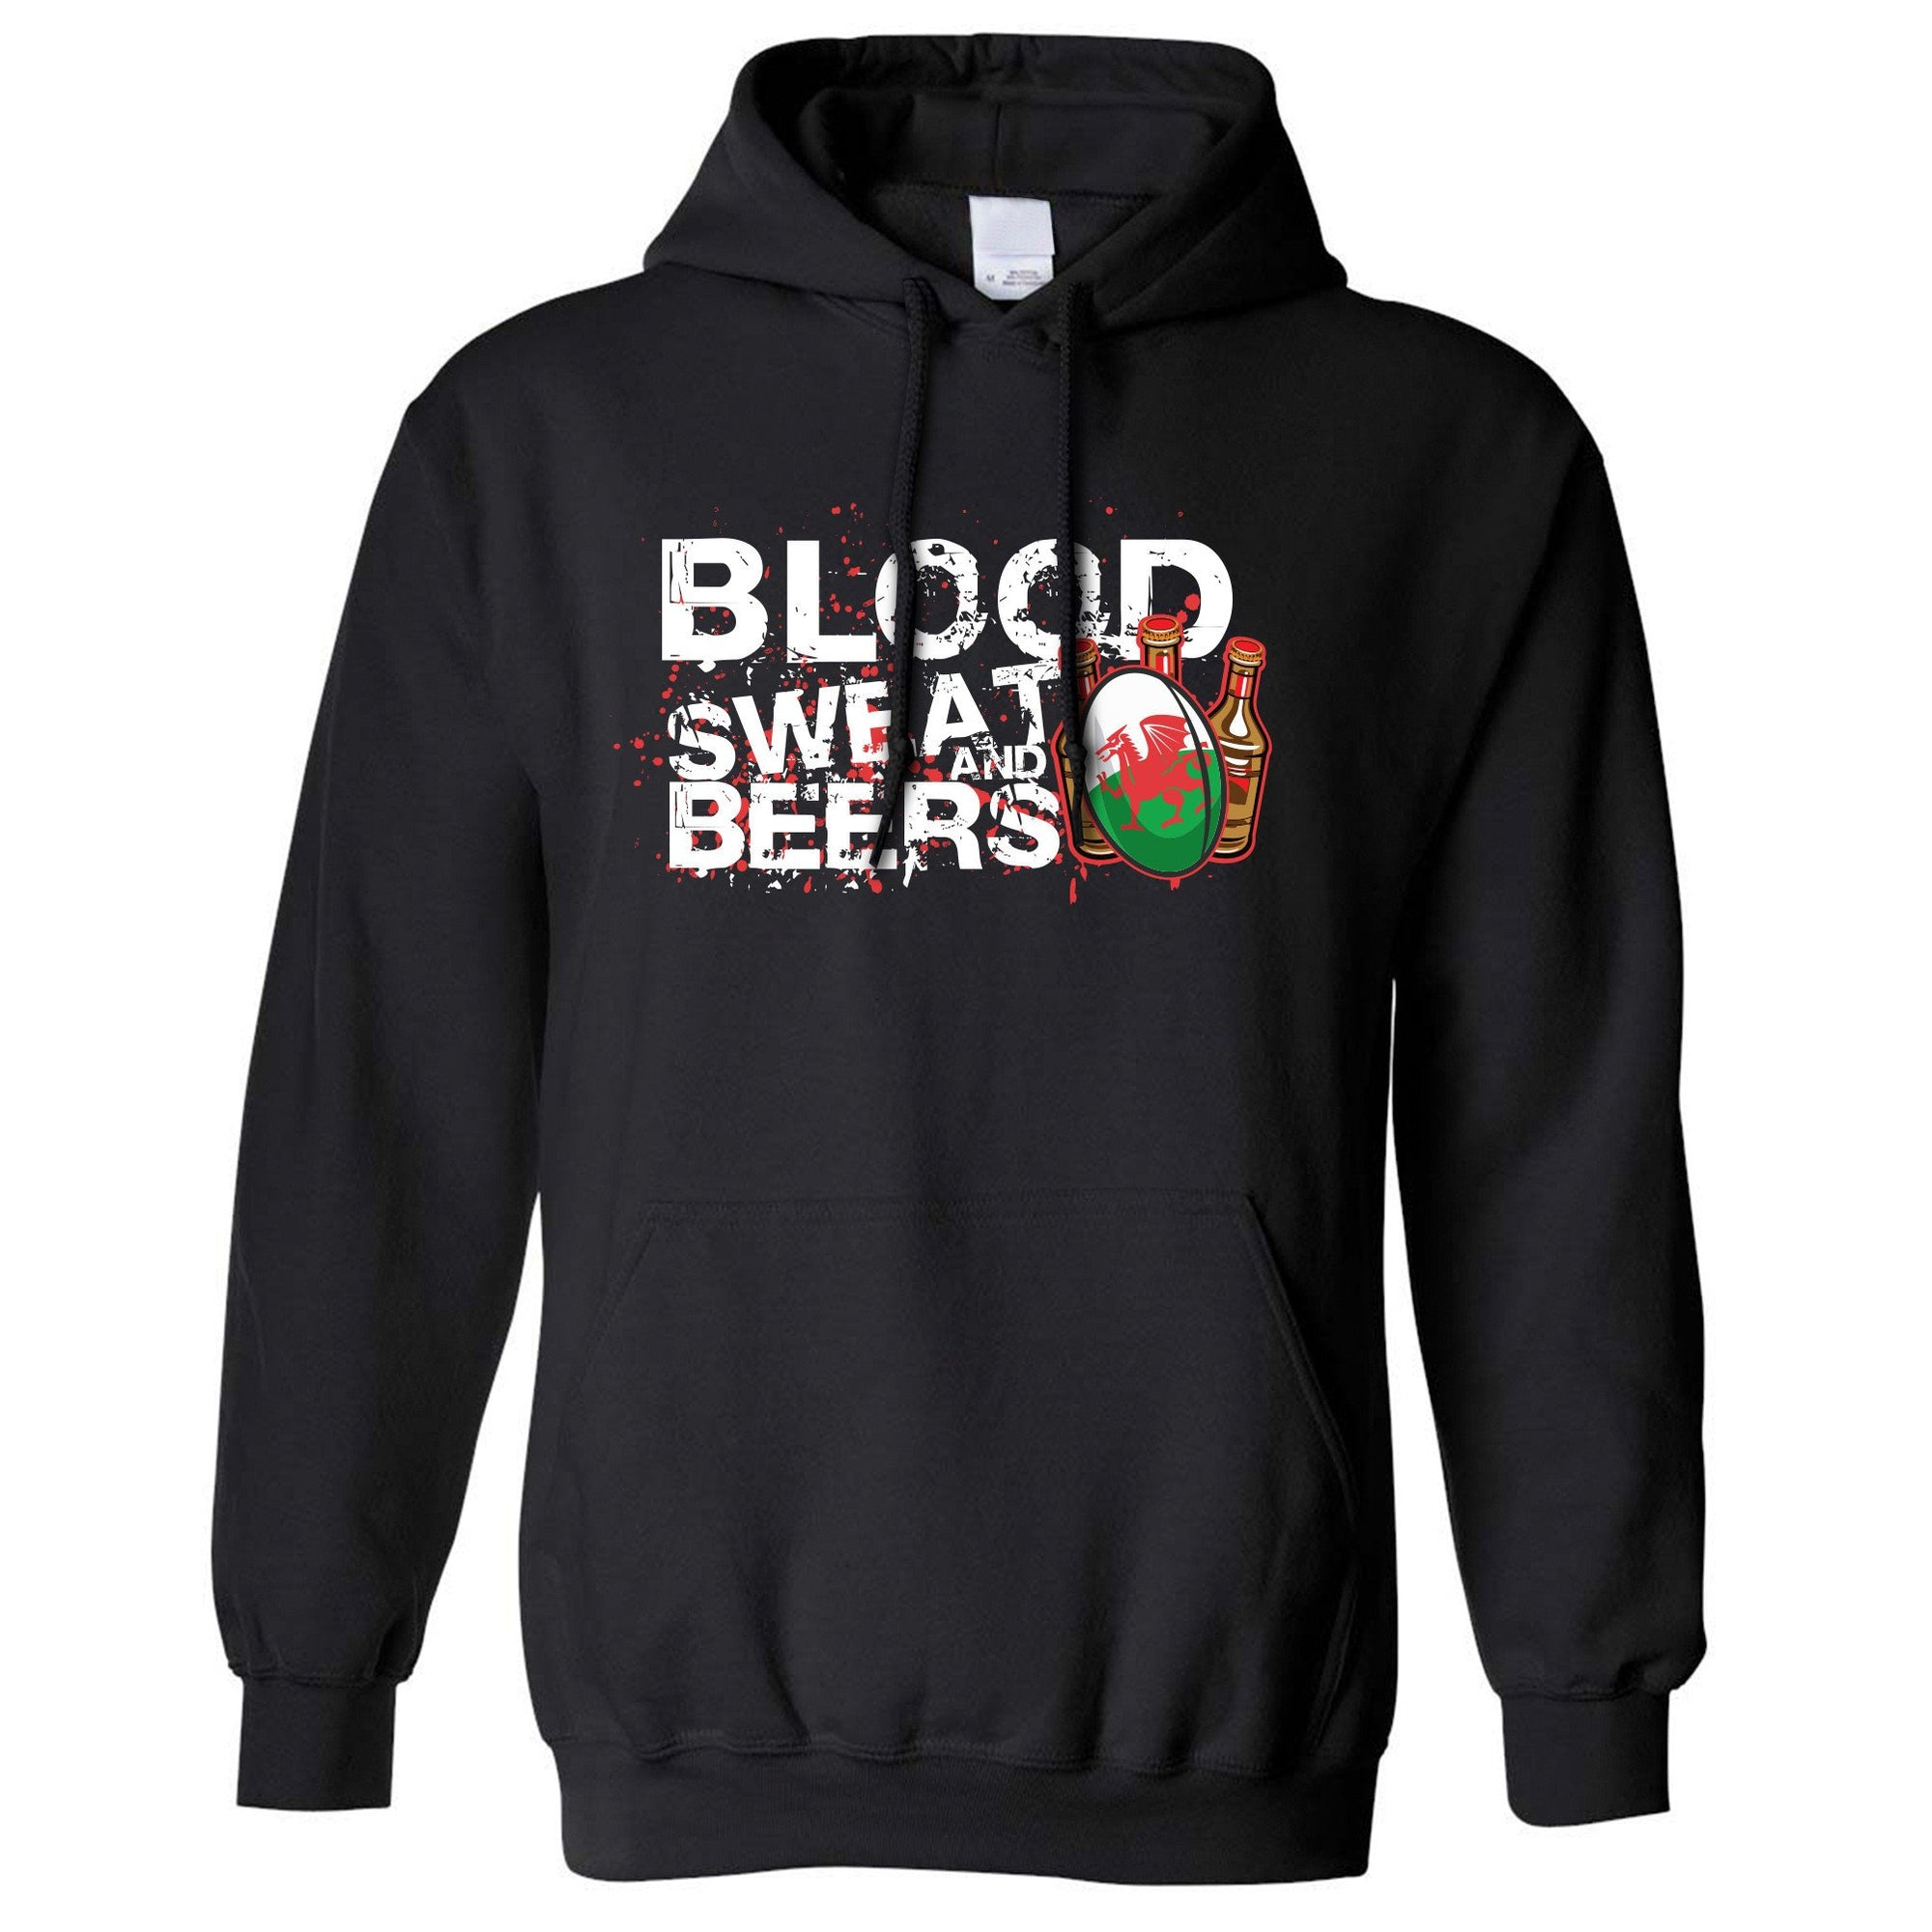 Wales Rugby Supporters Hoodie Blood, Sweat And Beers Hooded Jumper